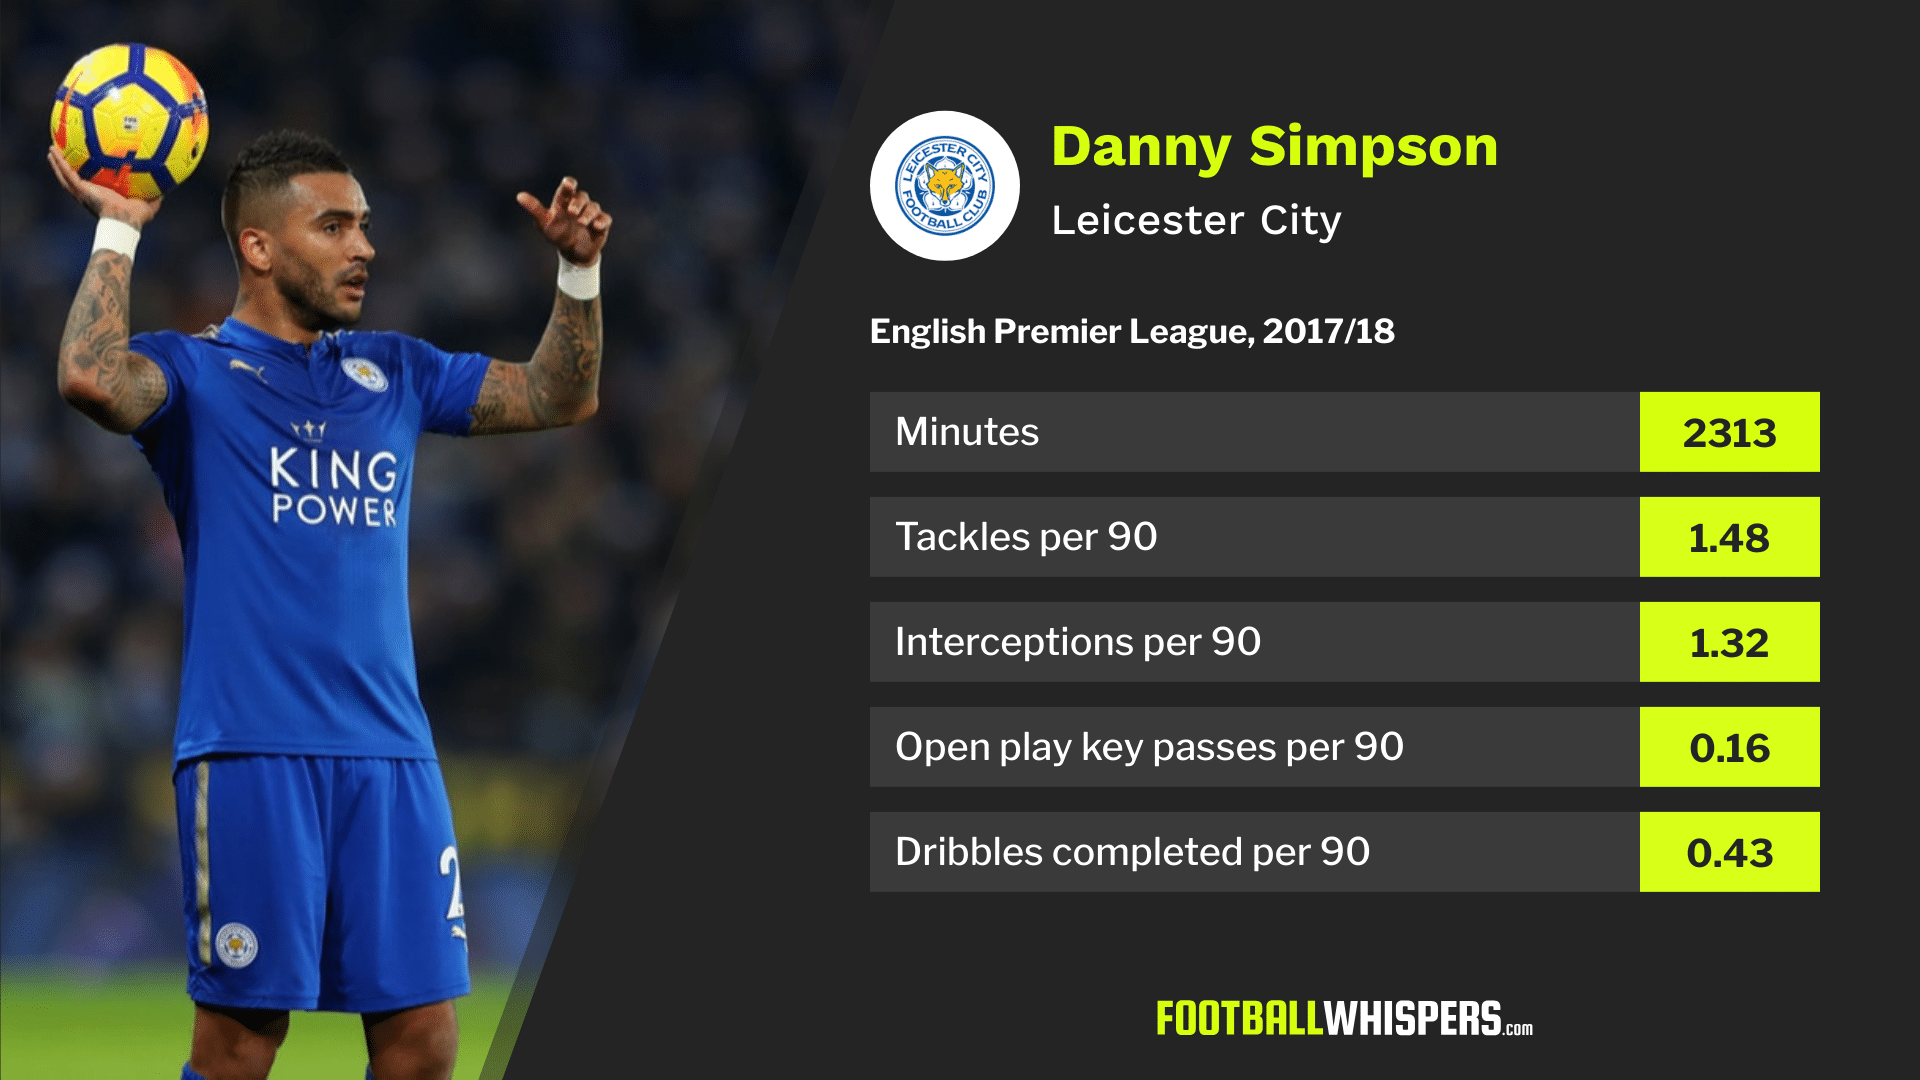 Danny Simpson's Premier League stats for Leicester City in 2017/18